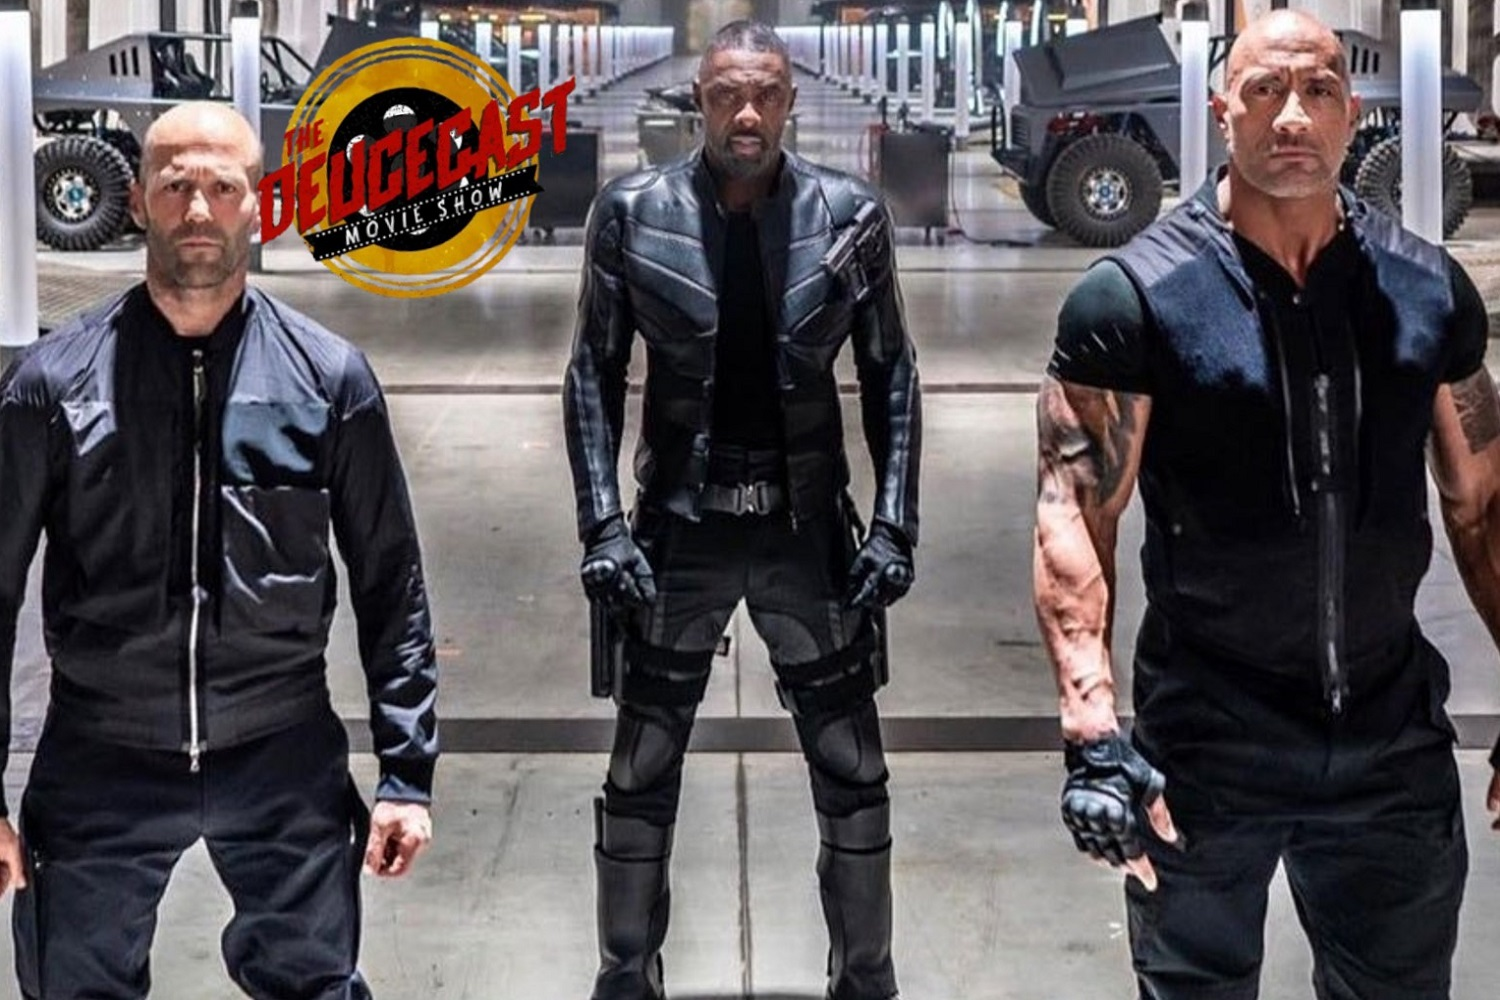 The Deucecast Movie Show #381: Summer Summer Summertime Movie Preview